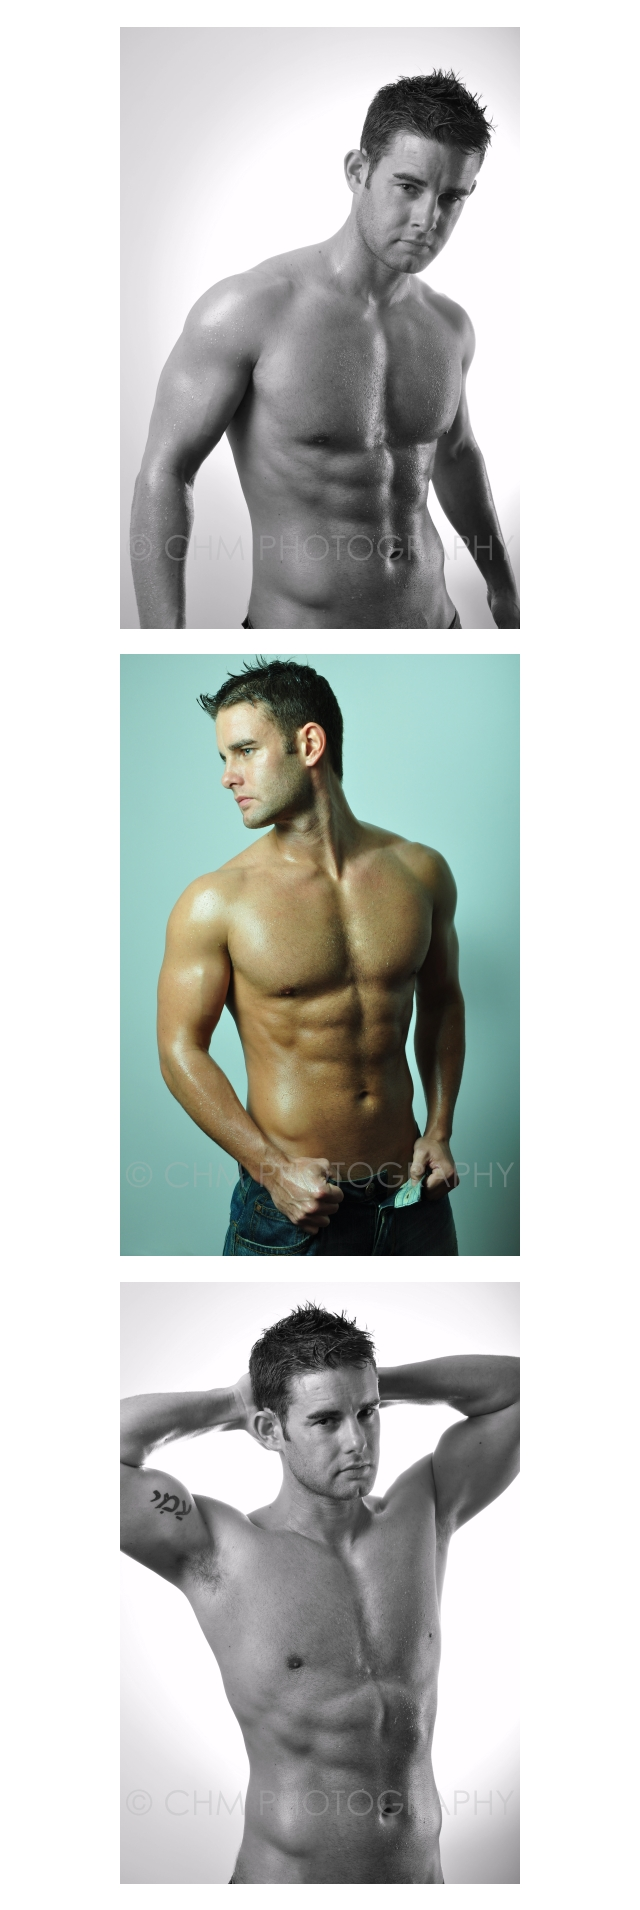 Picture About Male Model RobbieRobinson 28 years old from Edinburgh, Scotland, United Kingdom